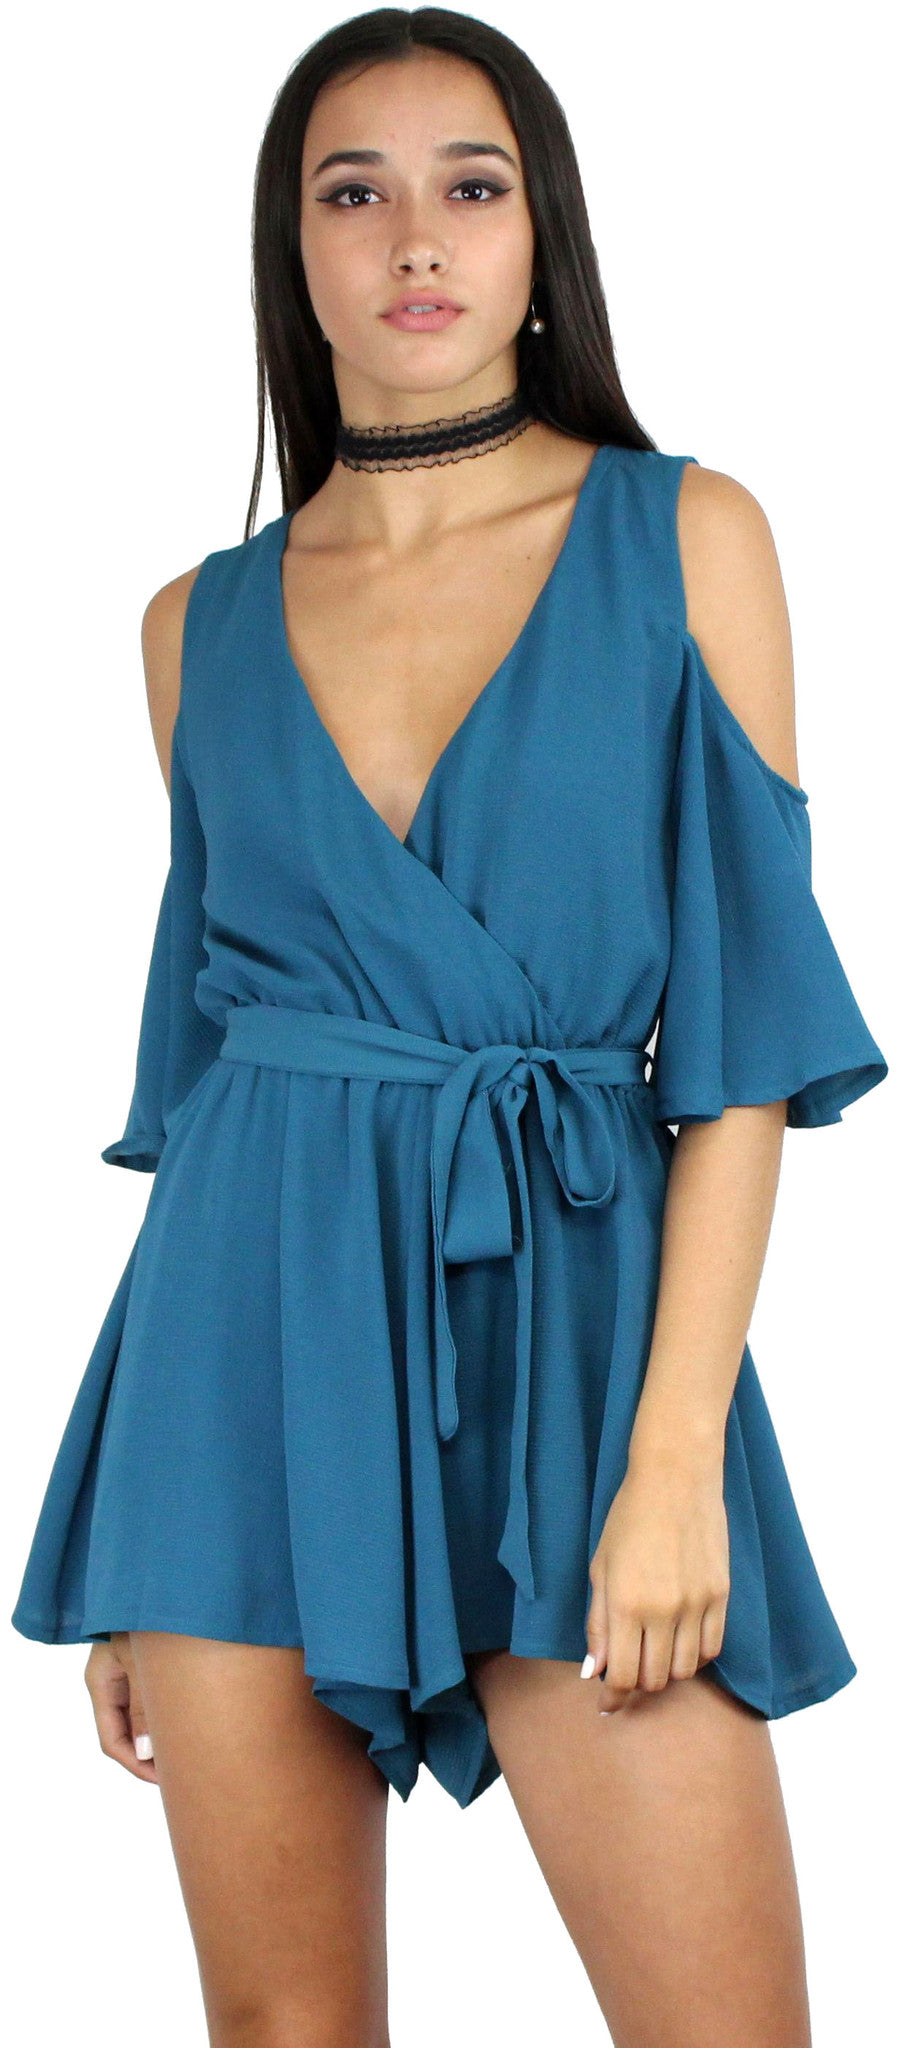 Dance It Out V-Neck Teal Romper